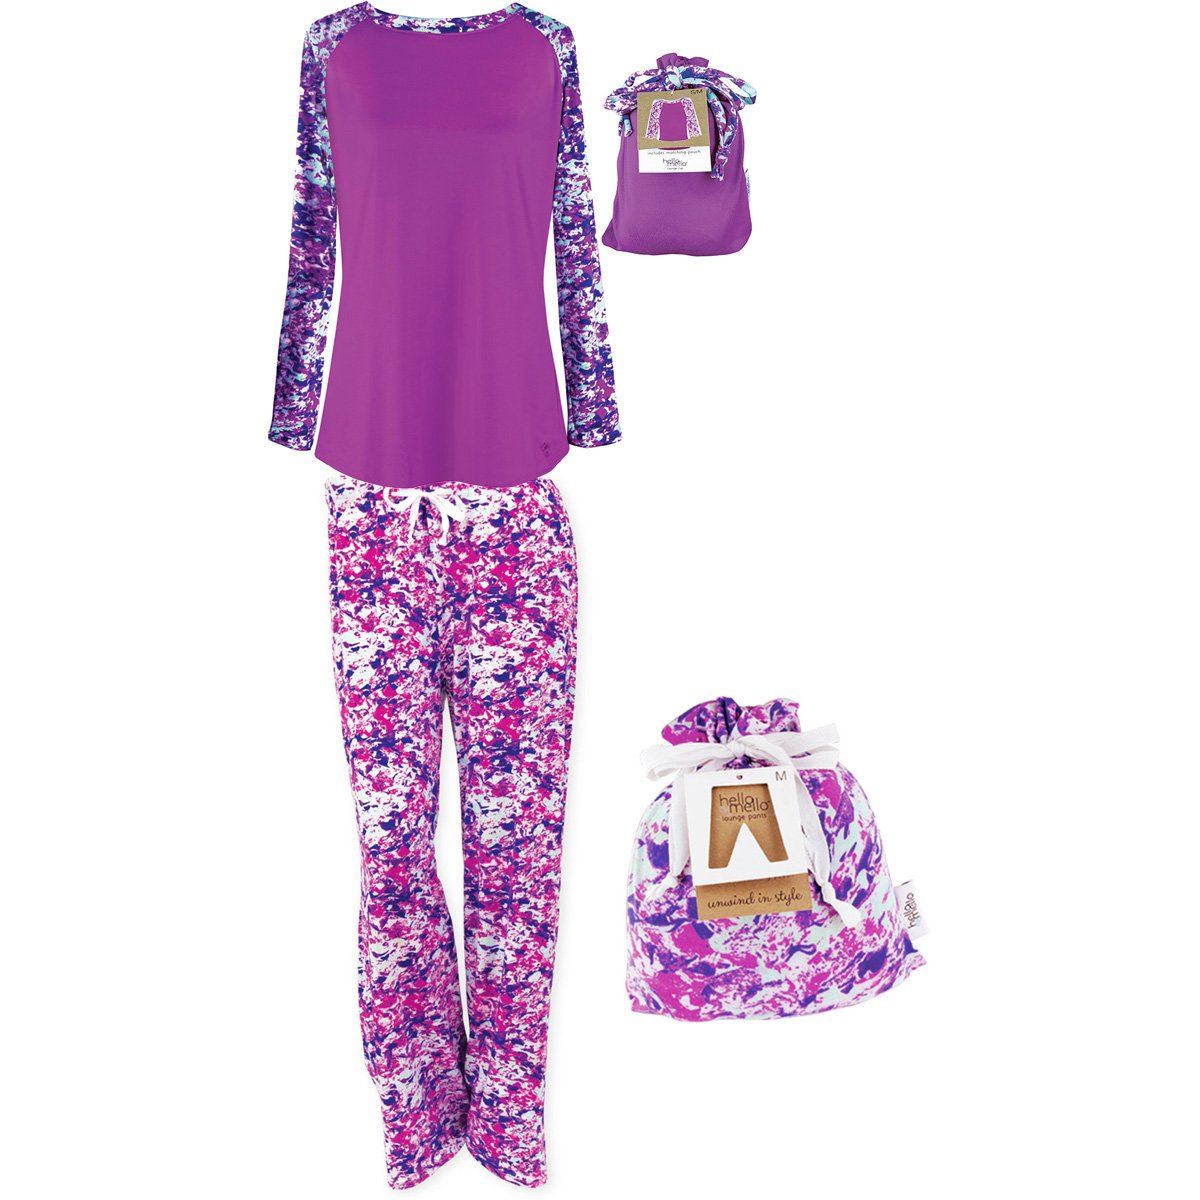 Hello Mello Luxurious Soft Womens Loungewear Set, Top and Pant Matching Set With Drawstring Bag